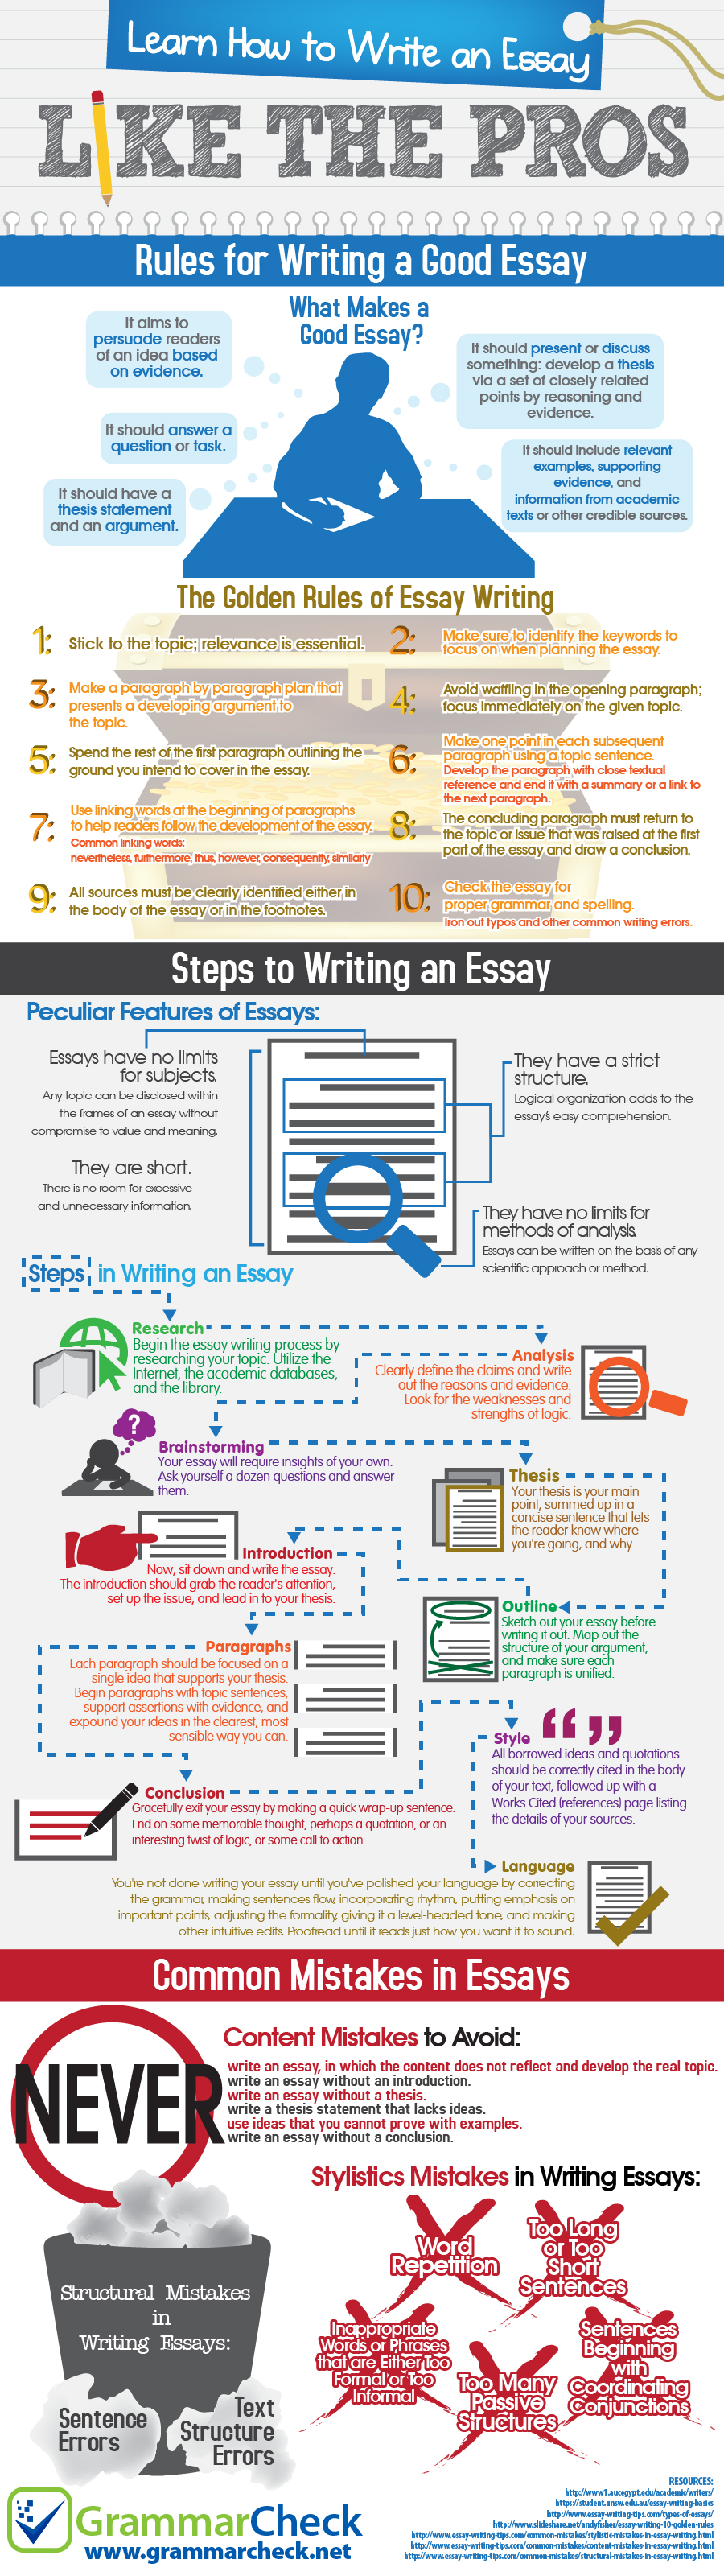 essay service review essayvikings com review essay universe top  essay review service college application essay review service law school essay review service best do my